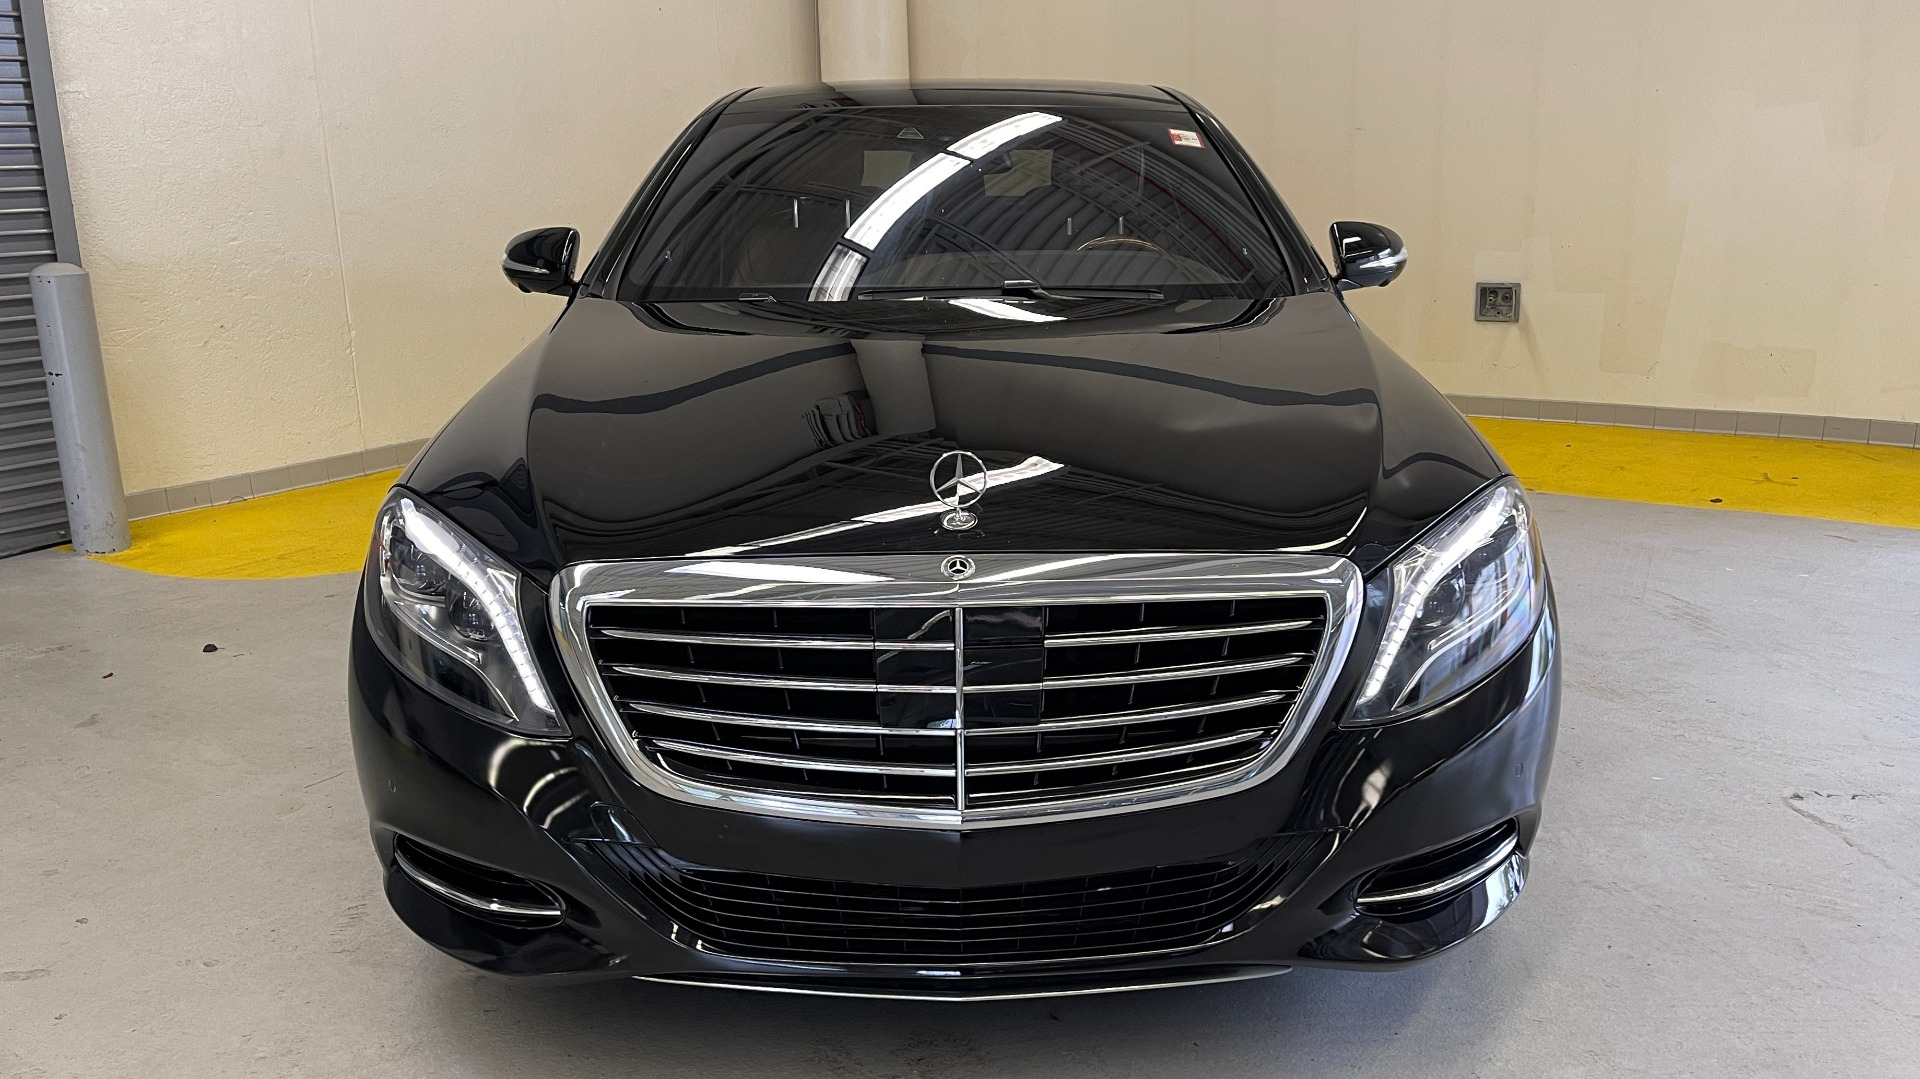 Used 2017 Mercedes-Benz S-CLASS S 550 4MATIC PREMIUM / NAV / BURMESTER / SUNROOF / REARVIEW for sale $58,995 at Formula Imports in Charlotte NC 28227 11